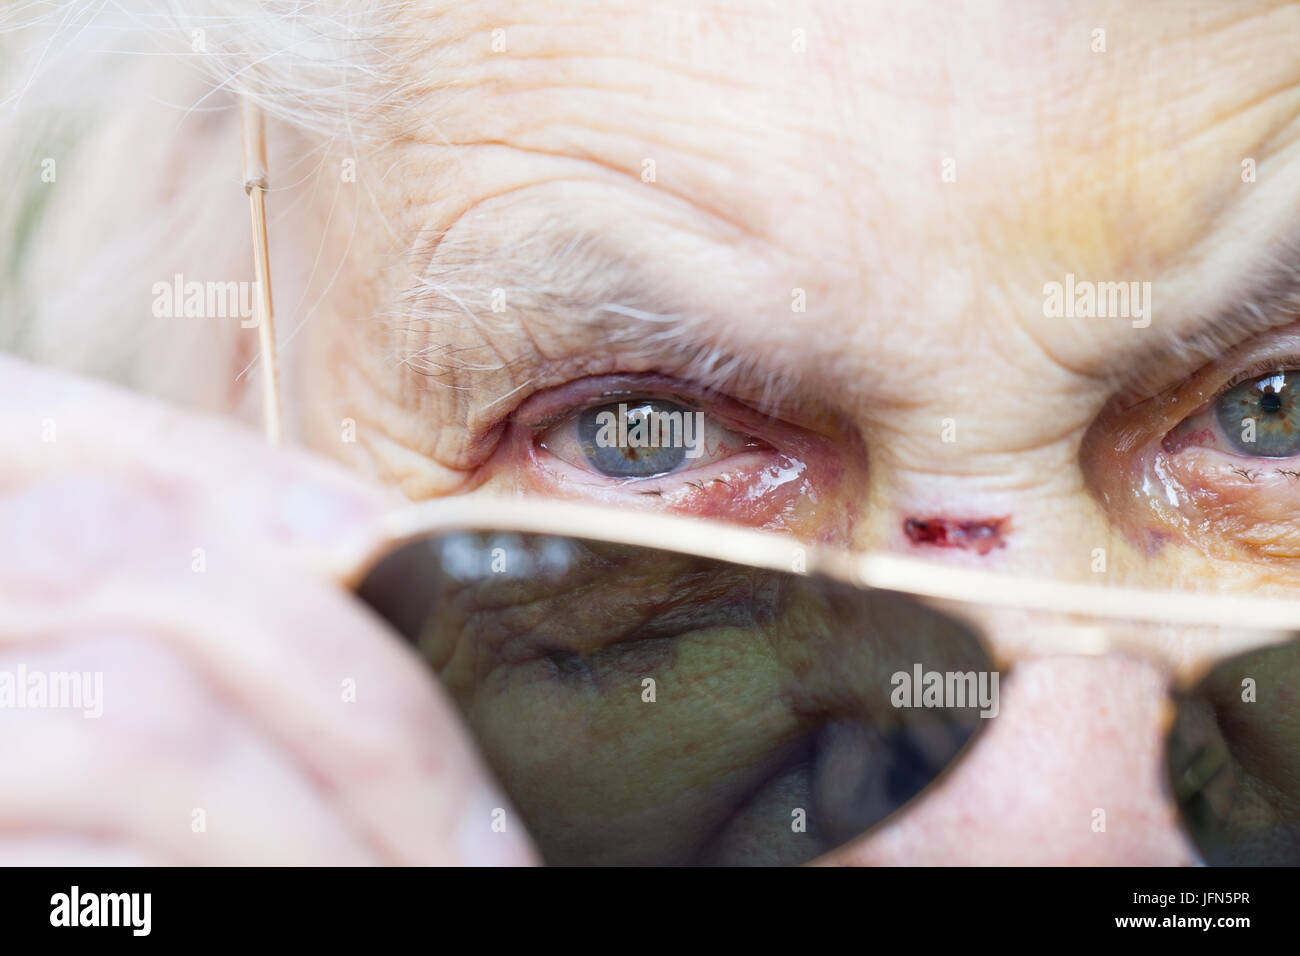 Close up picture of an injured elderly woman's eyes with sunglasses - Stock Image